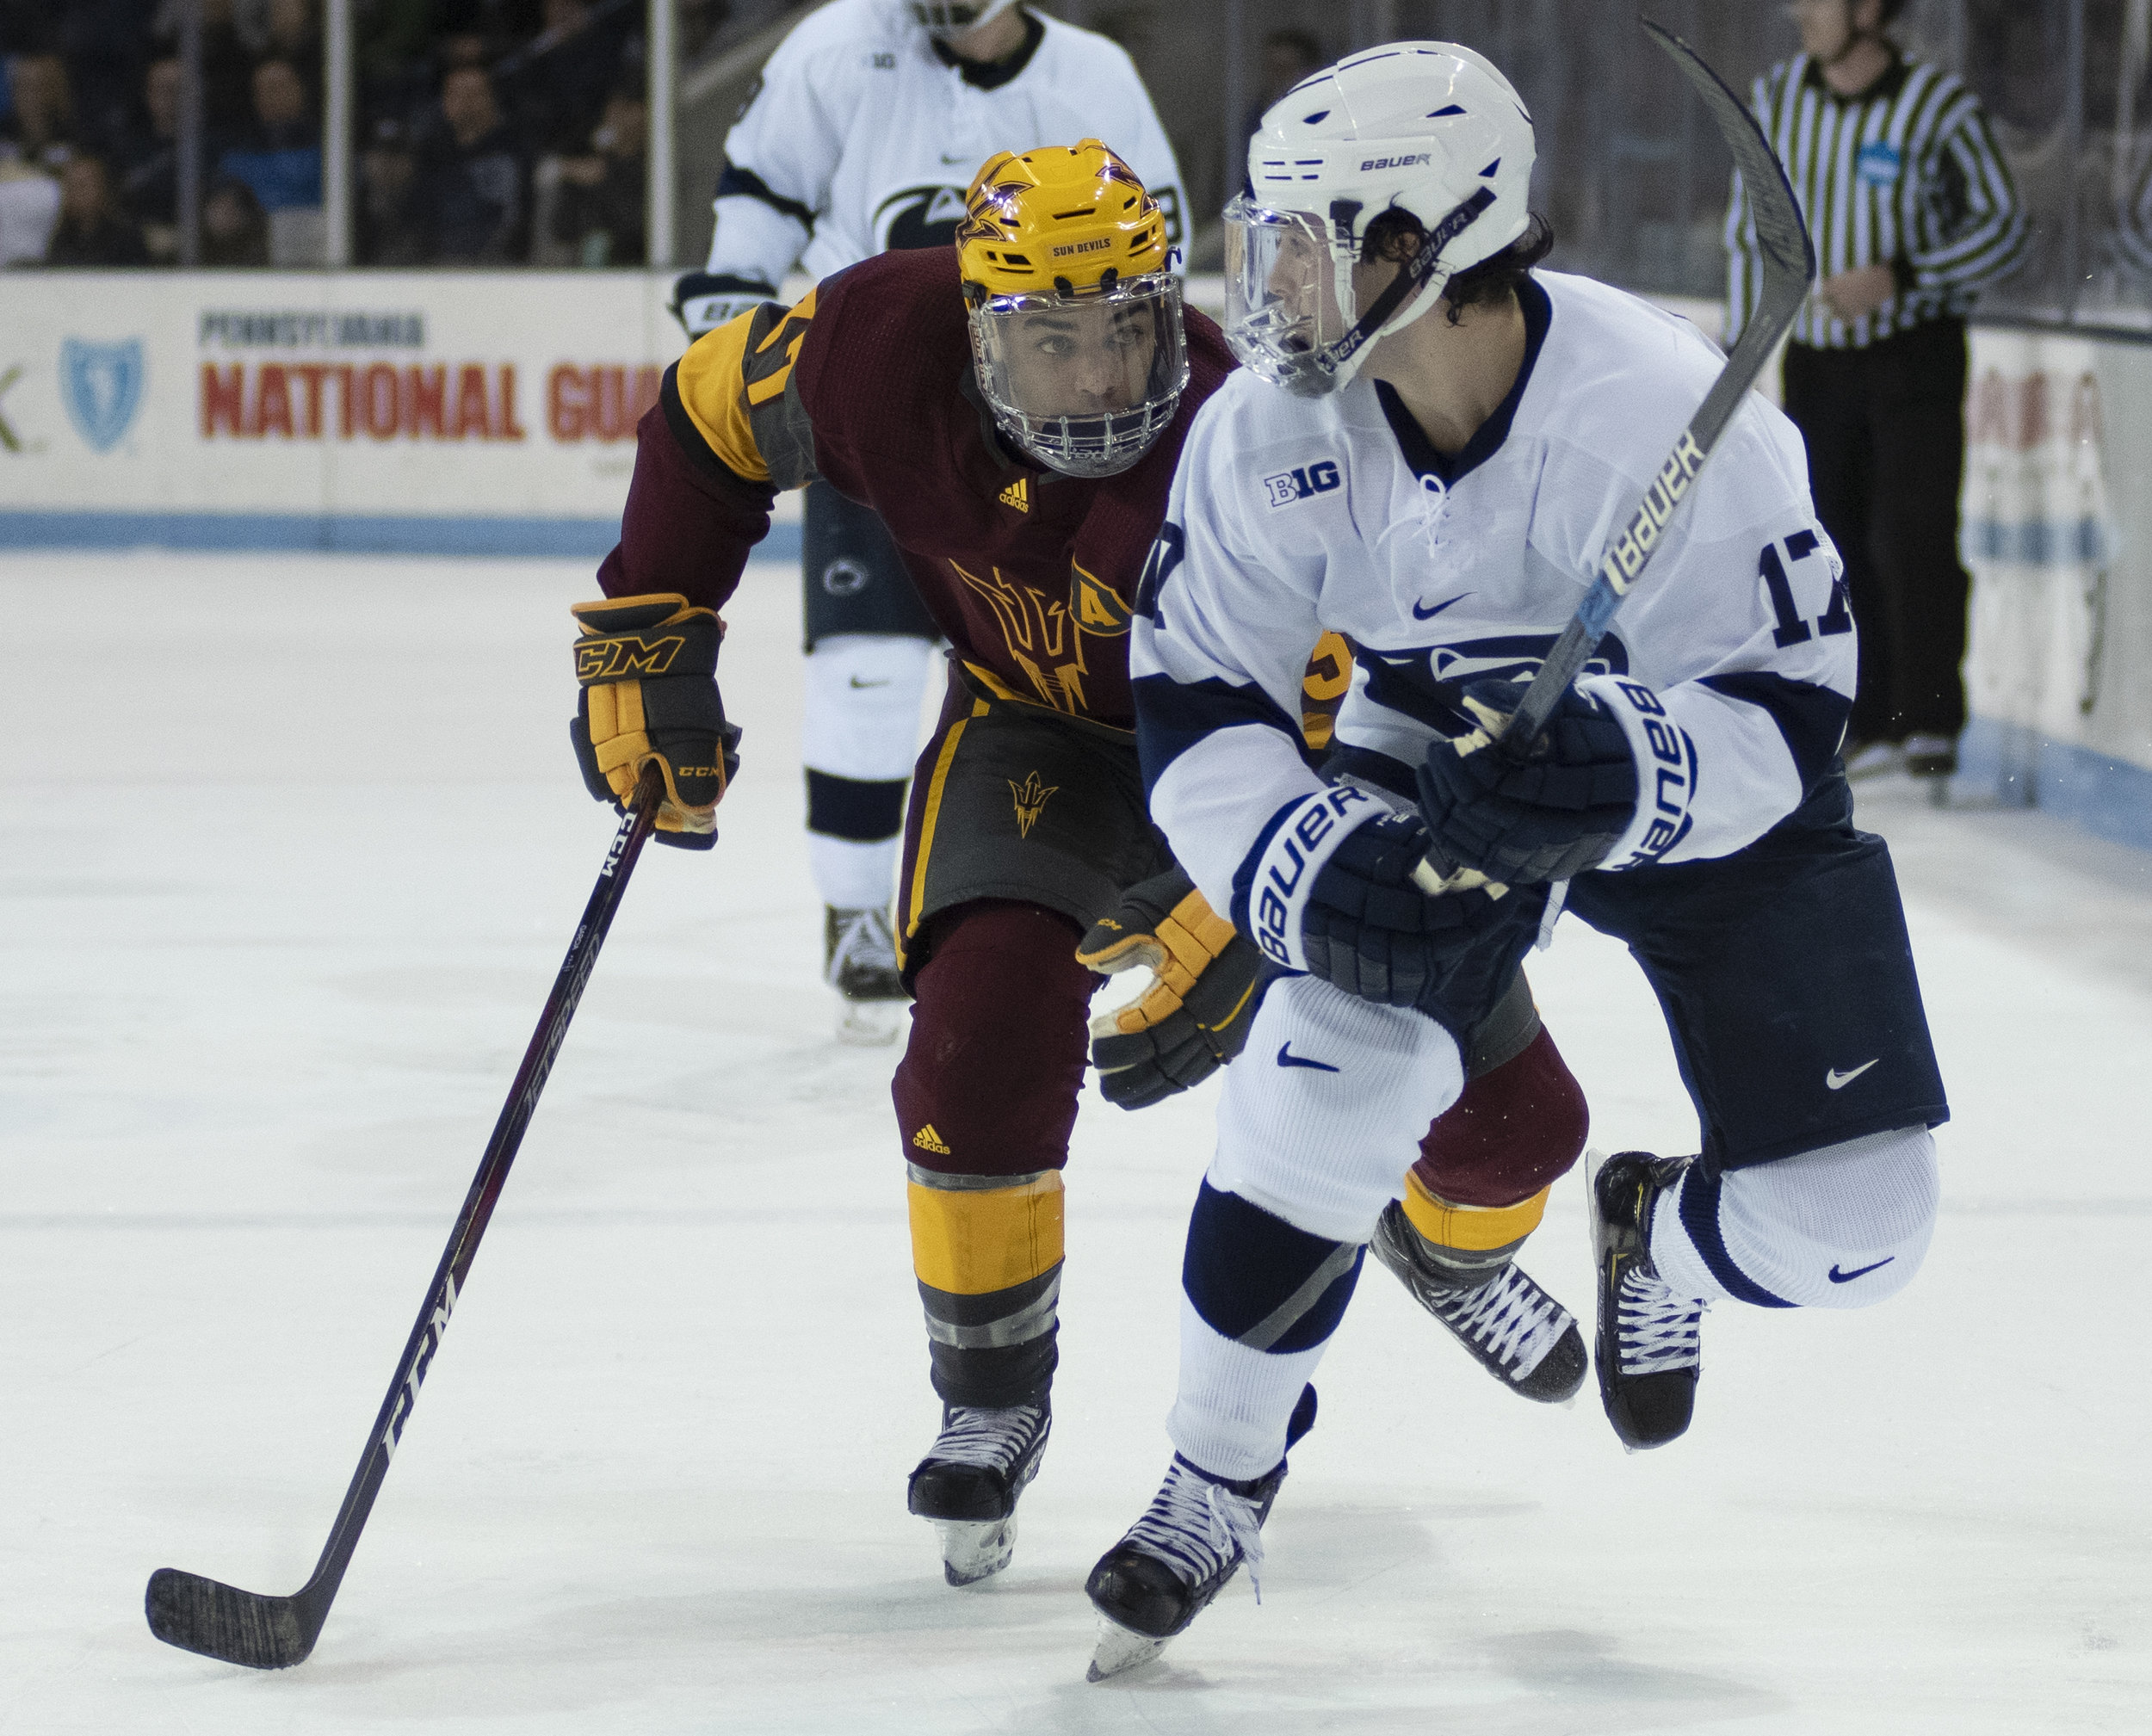 Forward Evan Barrett (17) battles for a puck during game against Arizona State at Pegula Ice Arena on Saturday, Nov. 3, 2018. The Nittany Lions fall to Arizona State 4-3 in overtime. | Photo by: Noah Riffe